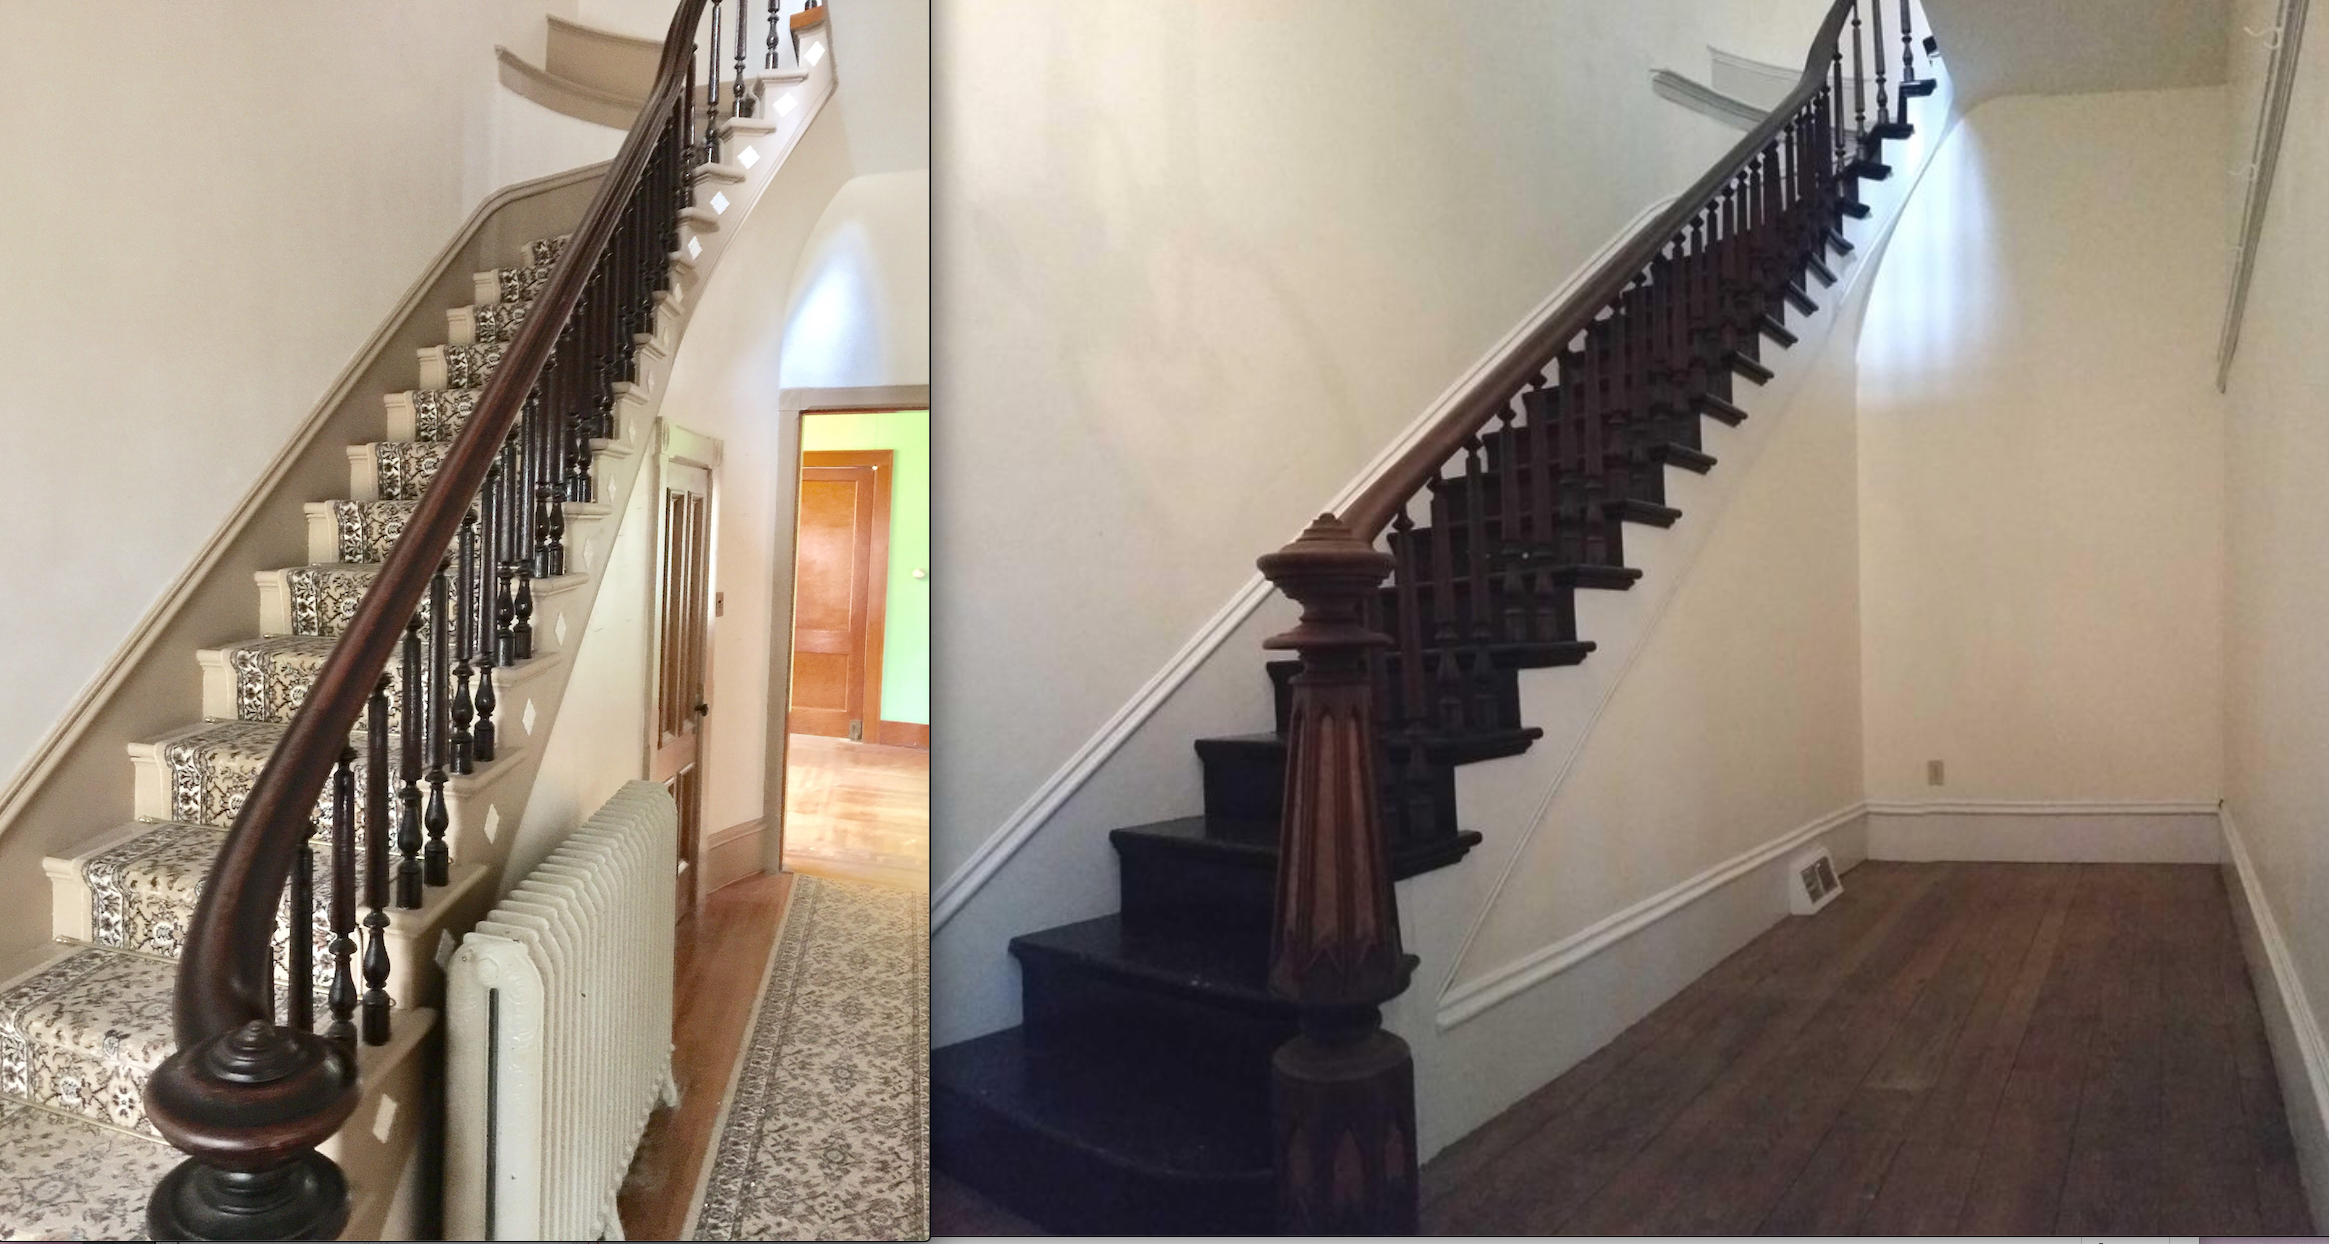 The grand entries—the stairs at Gaye Gardens (left) and the stairs at the sister house. Let's hope the new people rip down that weird divider wall. It's killing the natural light.